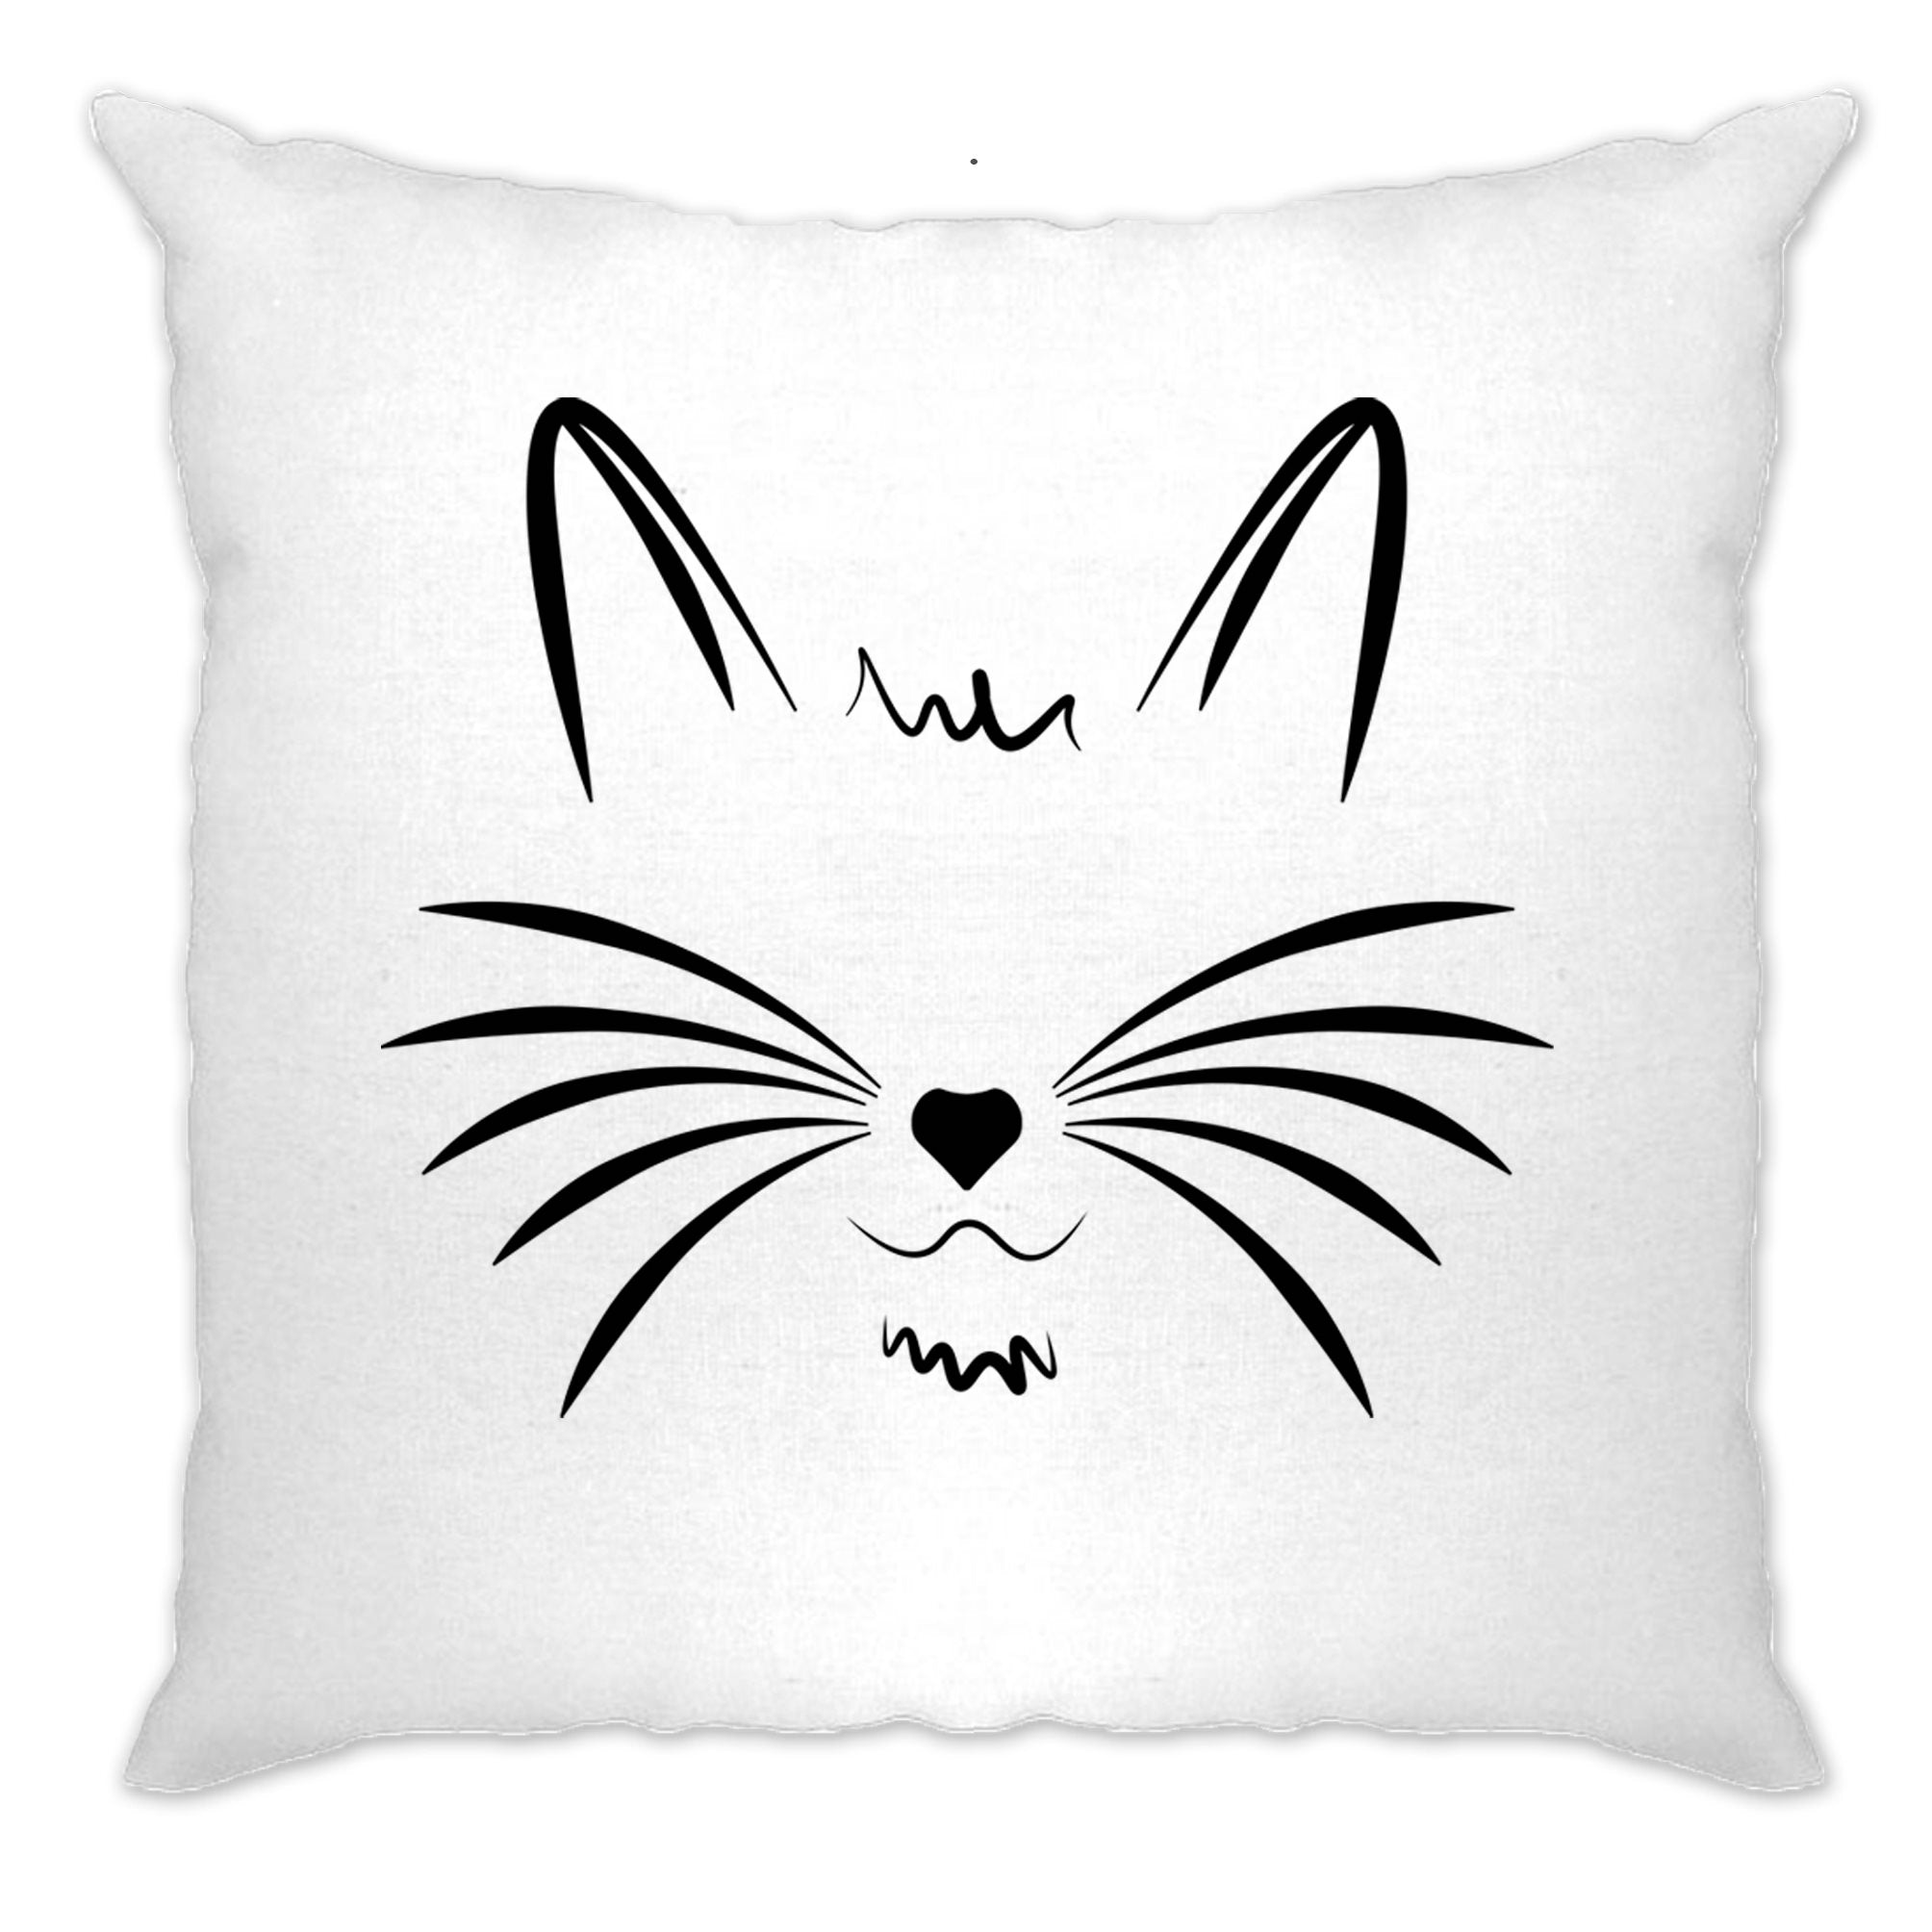 I Love Cats Cushion Cover Face with Heart Nose